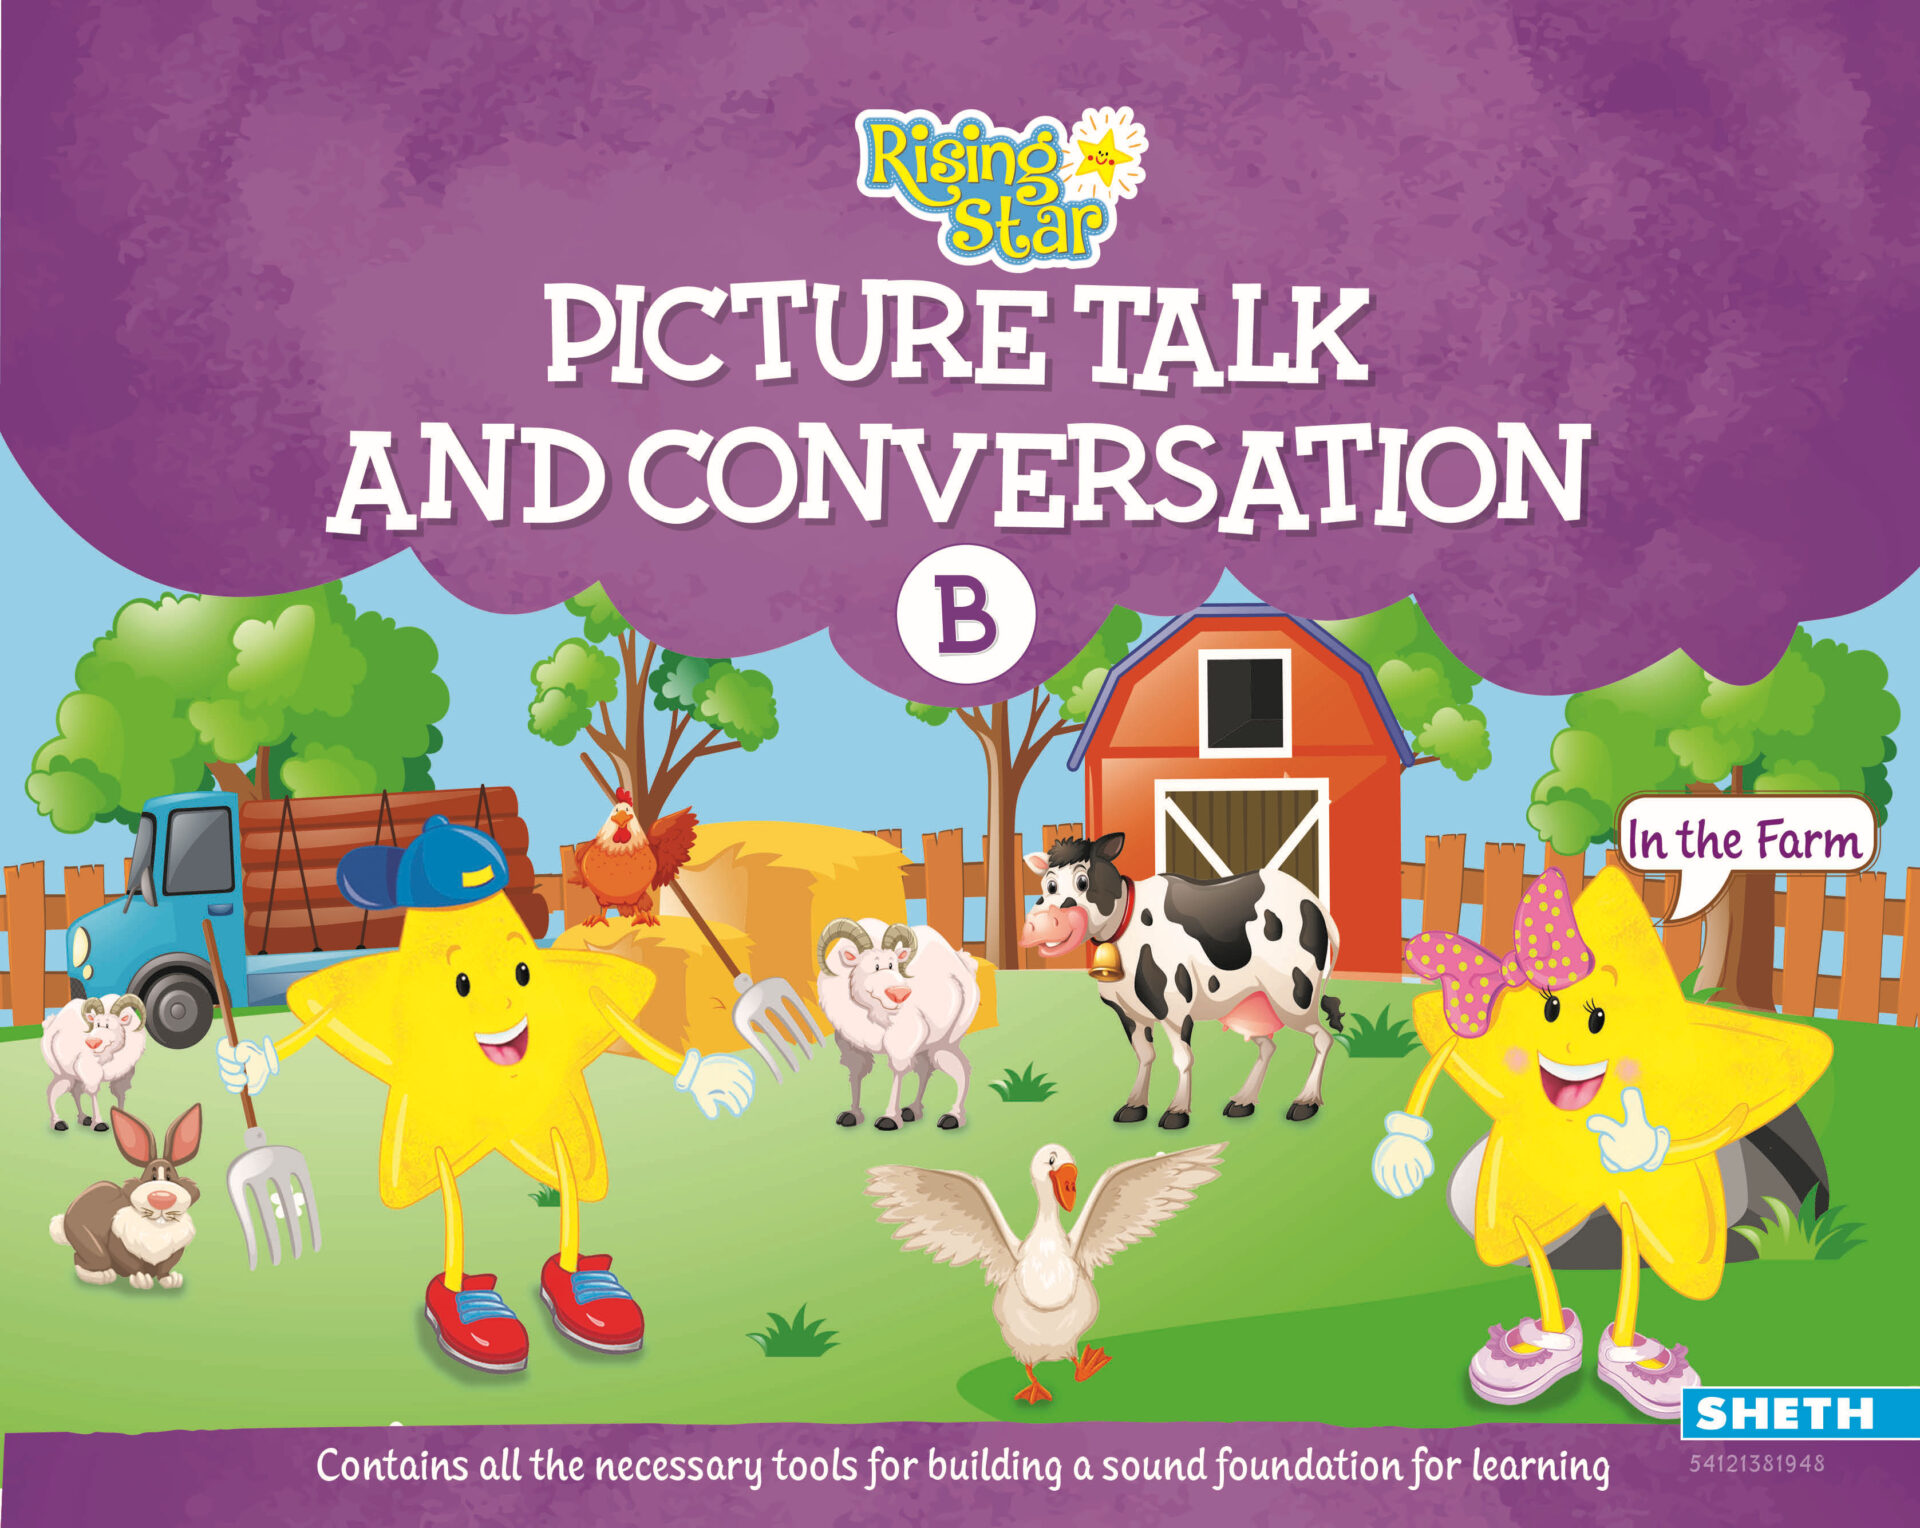 Rising Star Picture Talk and Conversation B 1 1